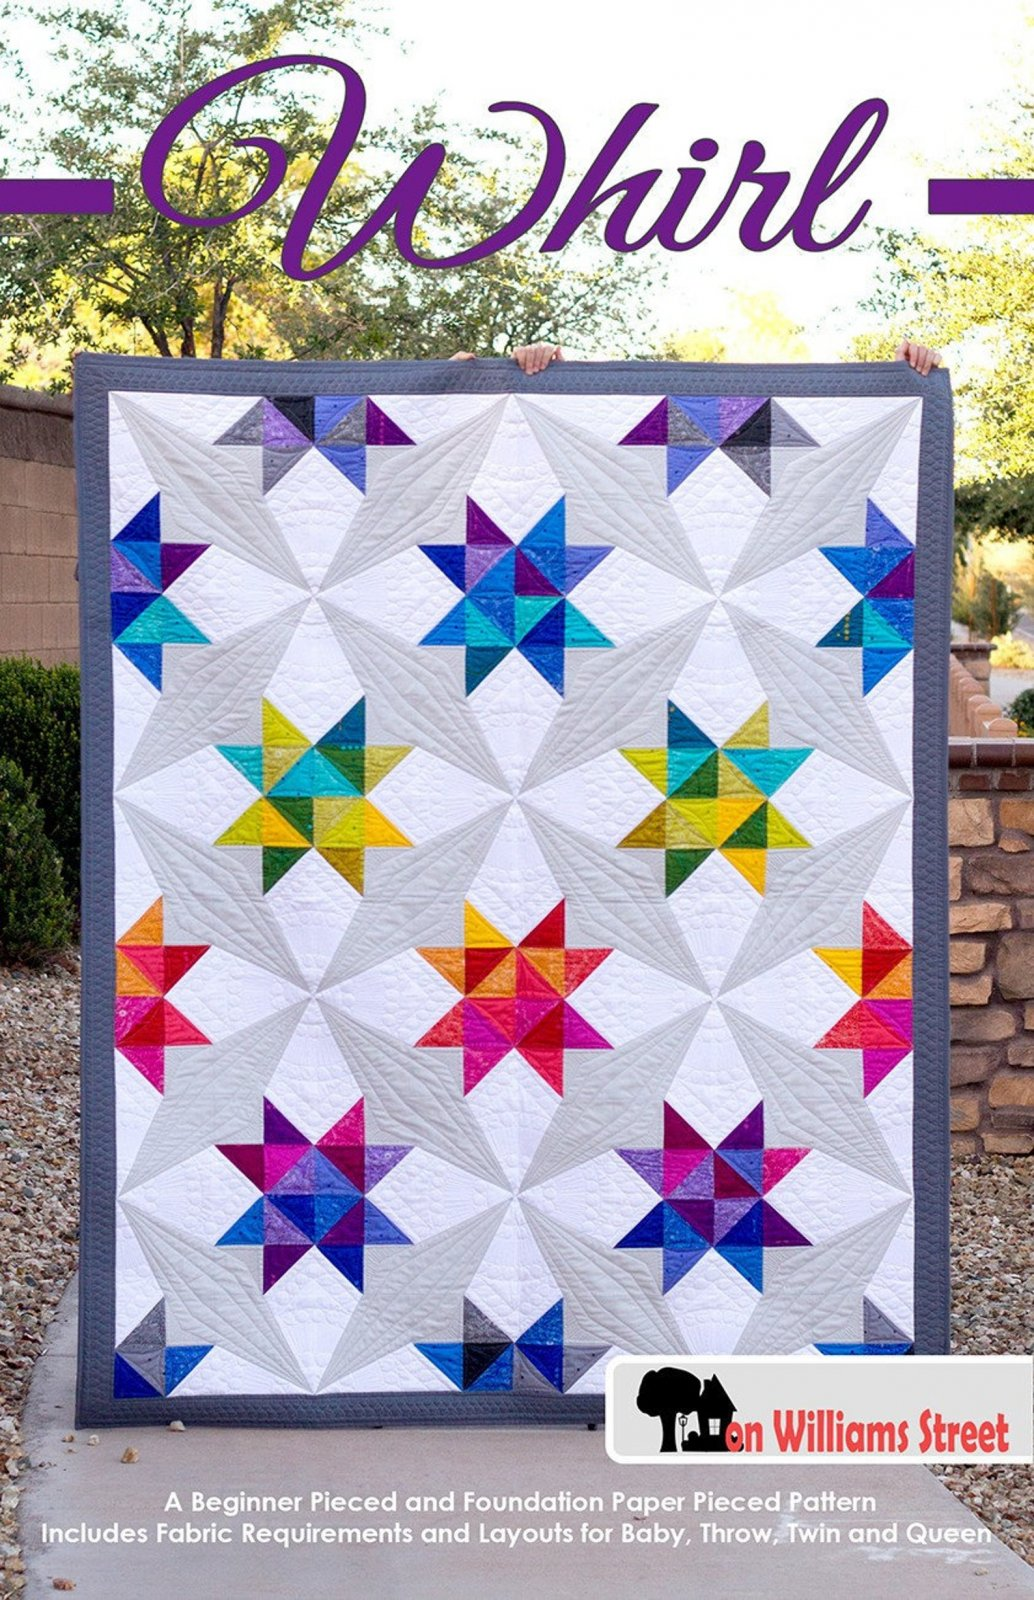 Whirl Quilt Pattern from On Williams Street